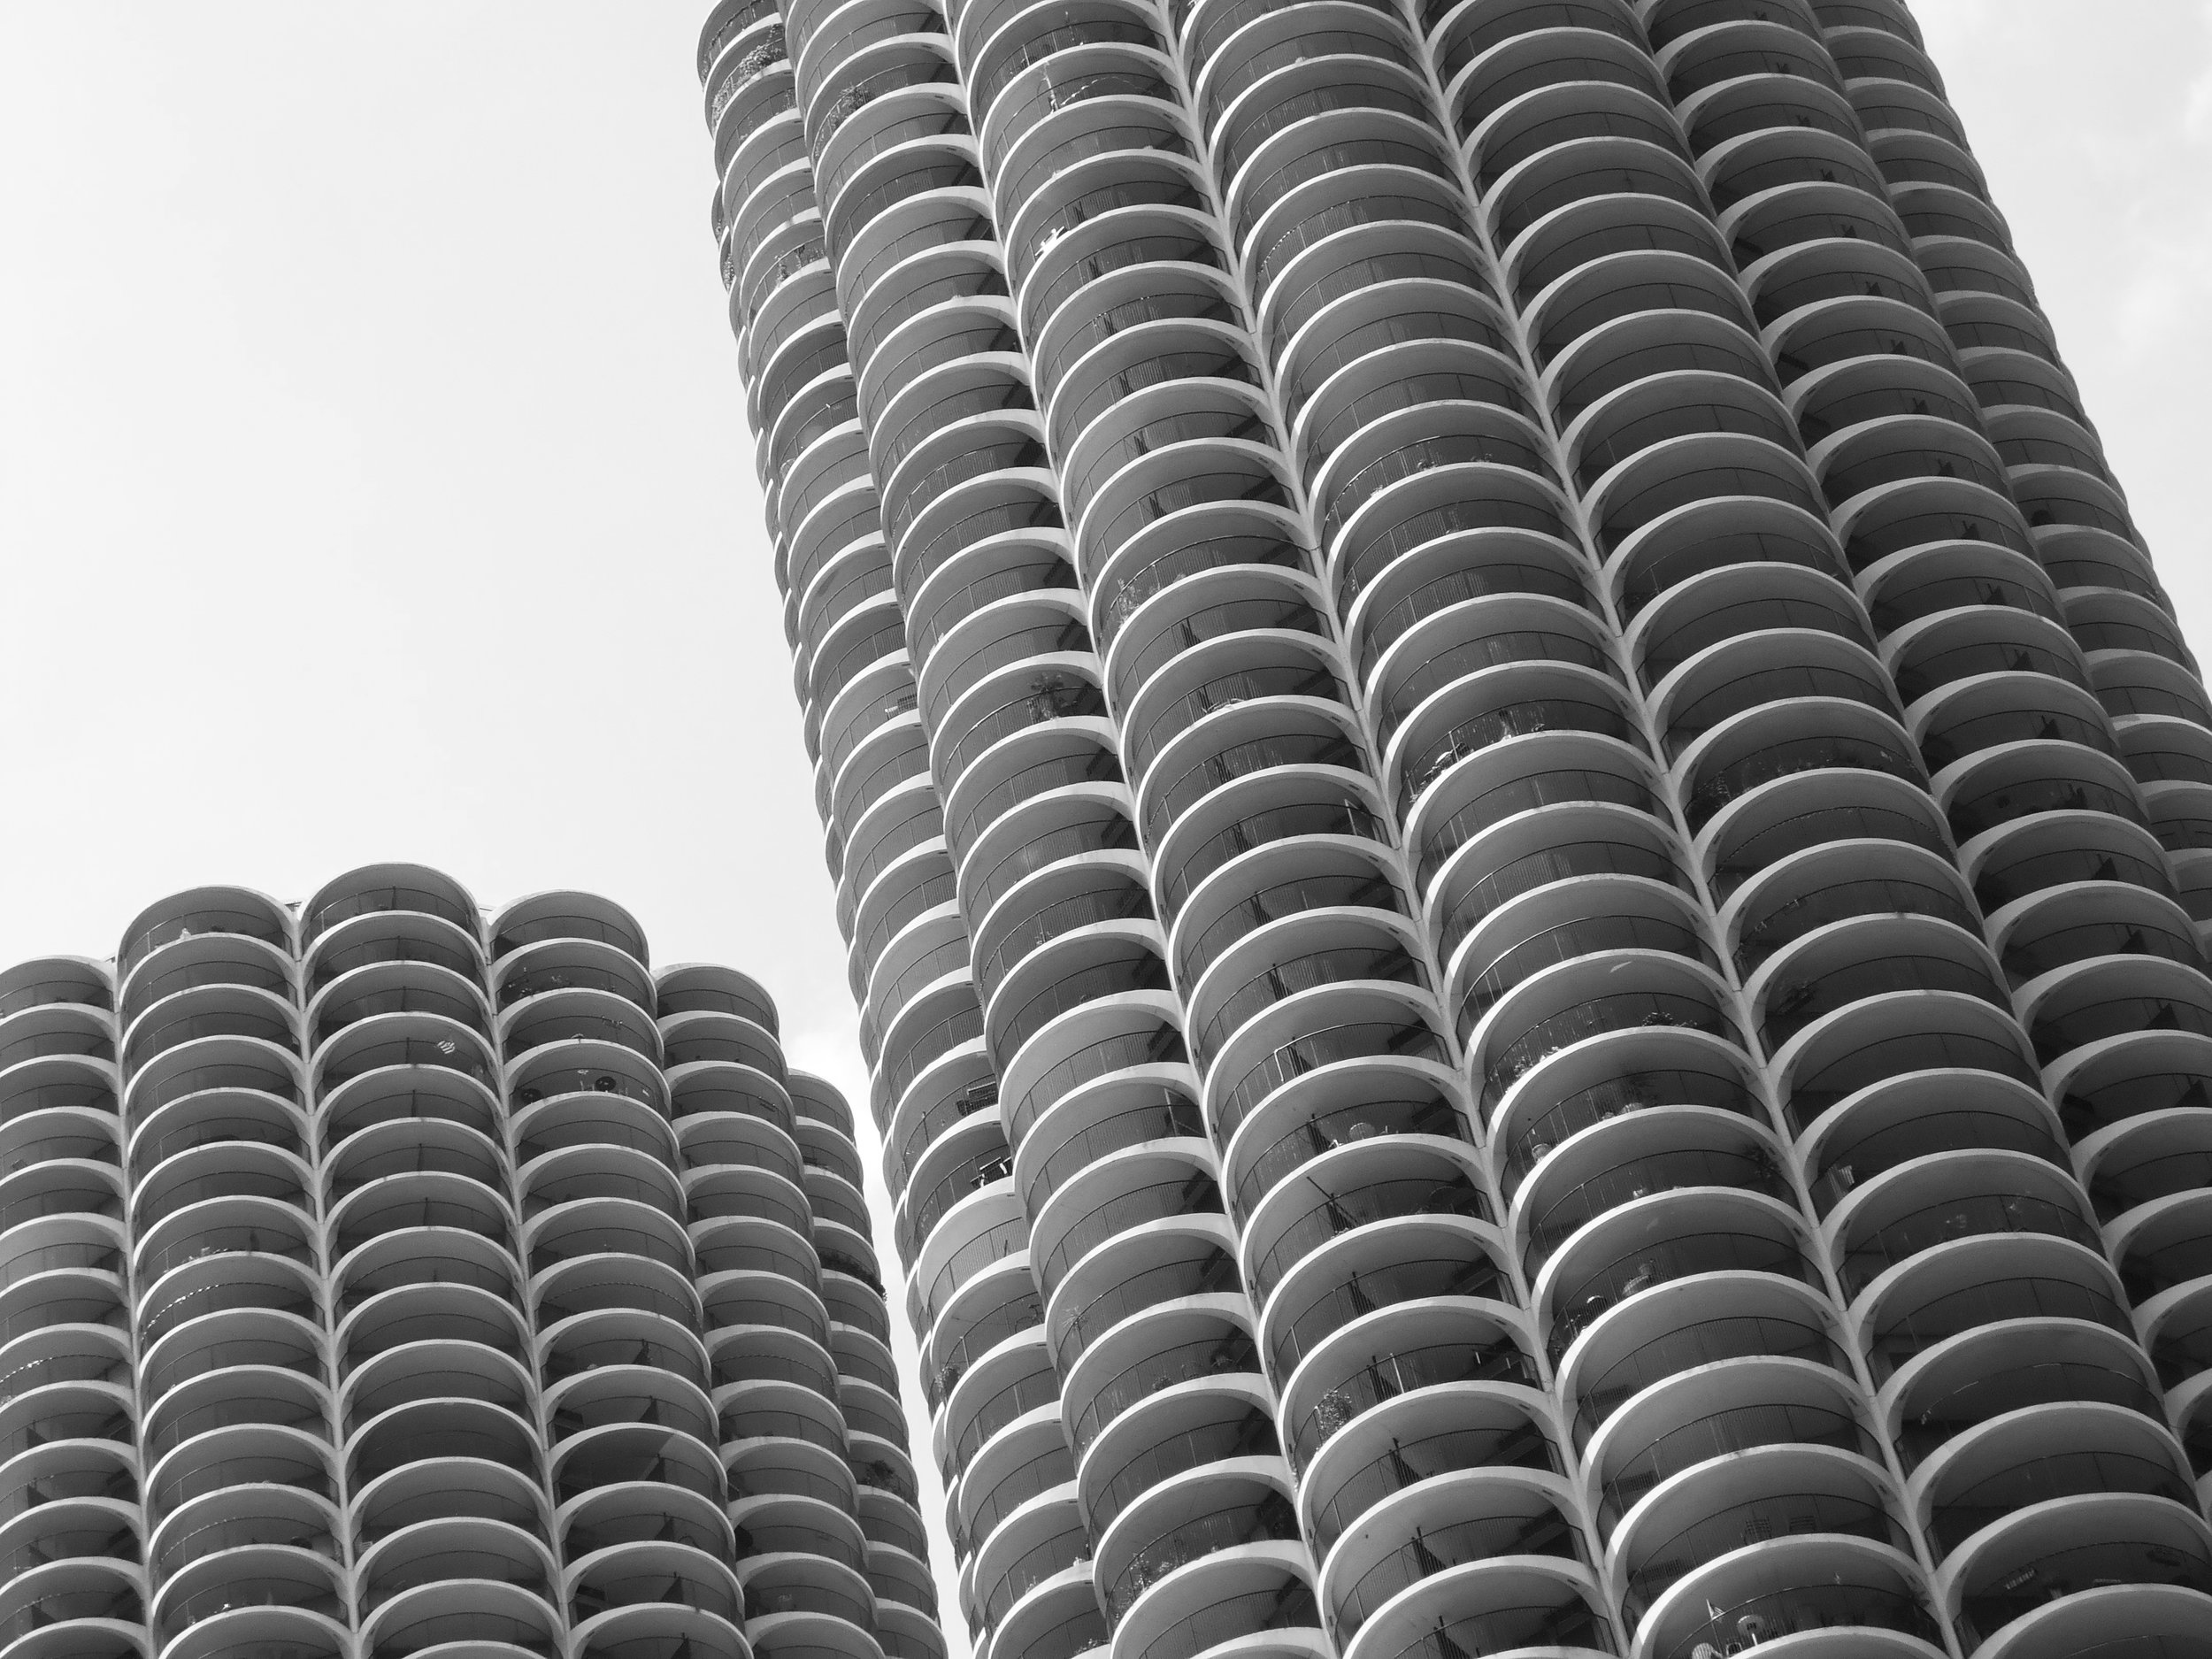 marina city corn cob buildings chicago.jpg